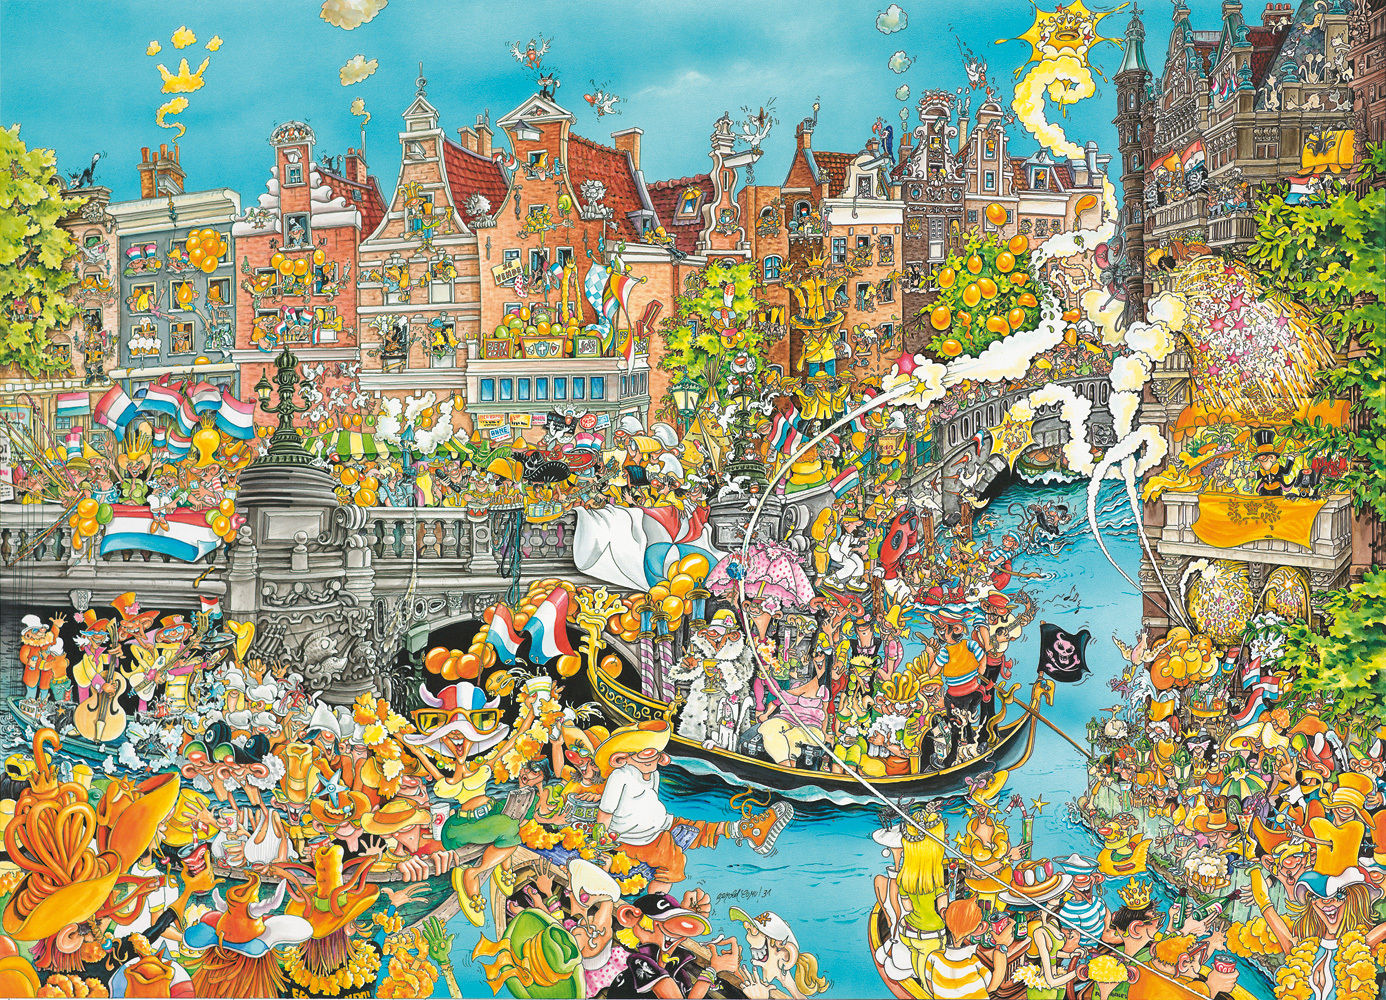 King Amsterdam King S Day Jigsaw Puzzle 1000 Pieces Brand New Straatkunst Thema Nederland